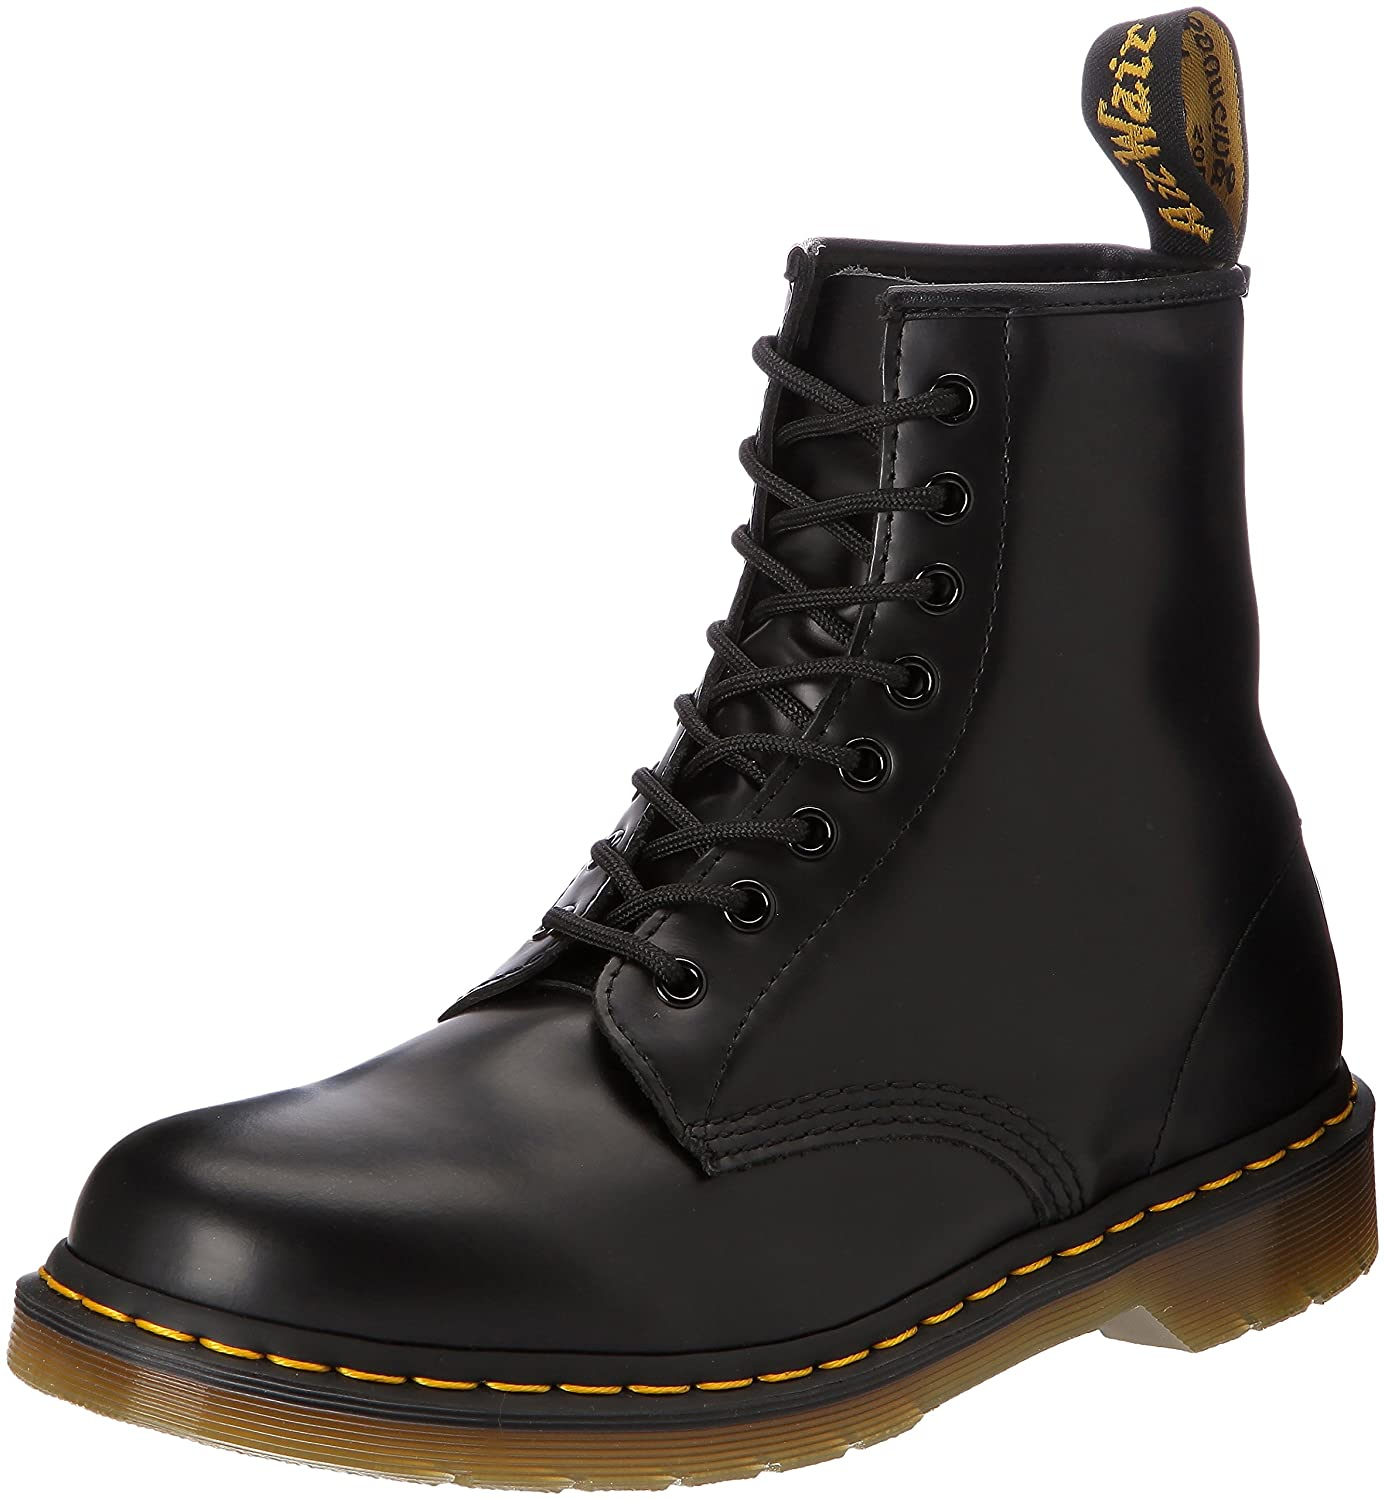 Dr. Martens 1460 Originals Eight-Eye Lace-Up Boot B000BNXEA4 4 UK (US Women's 6 M)|Black Smooth Leather